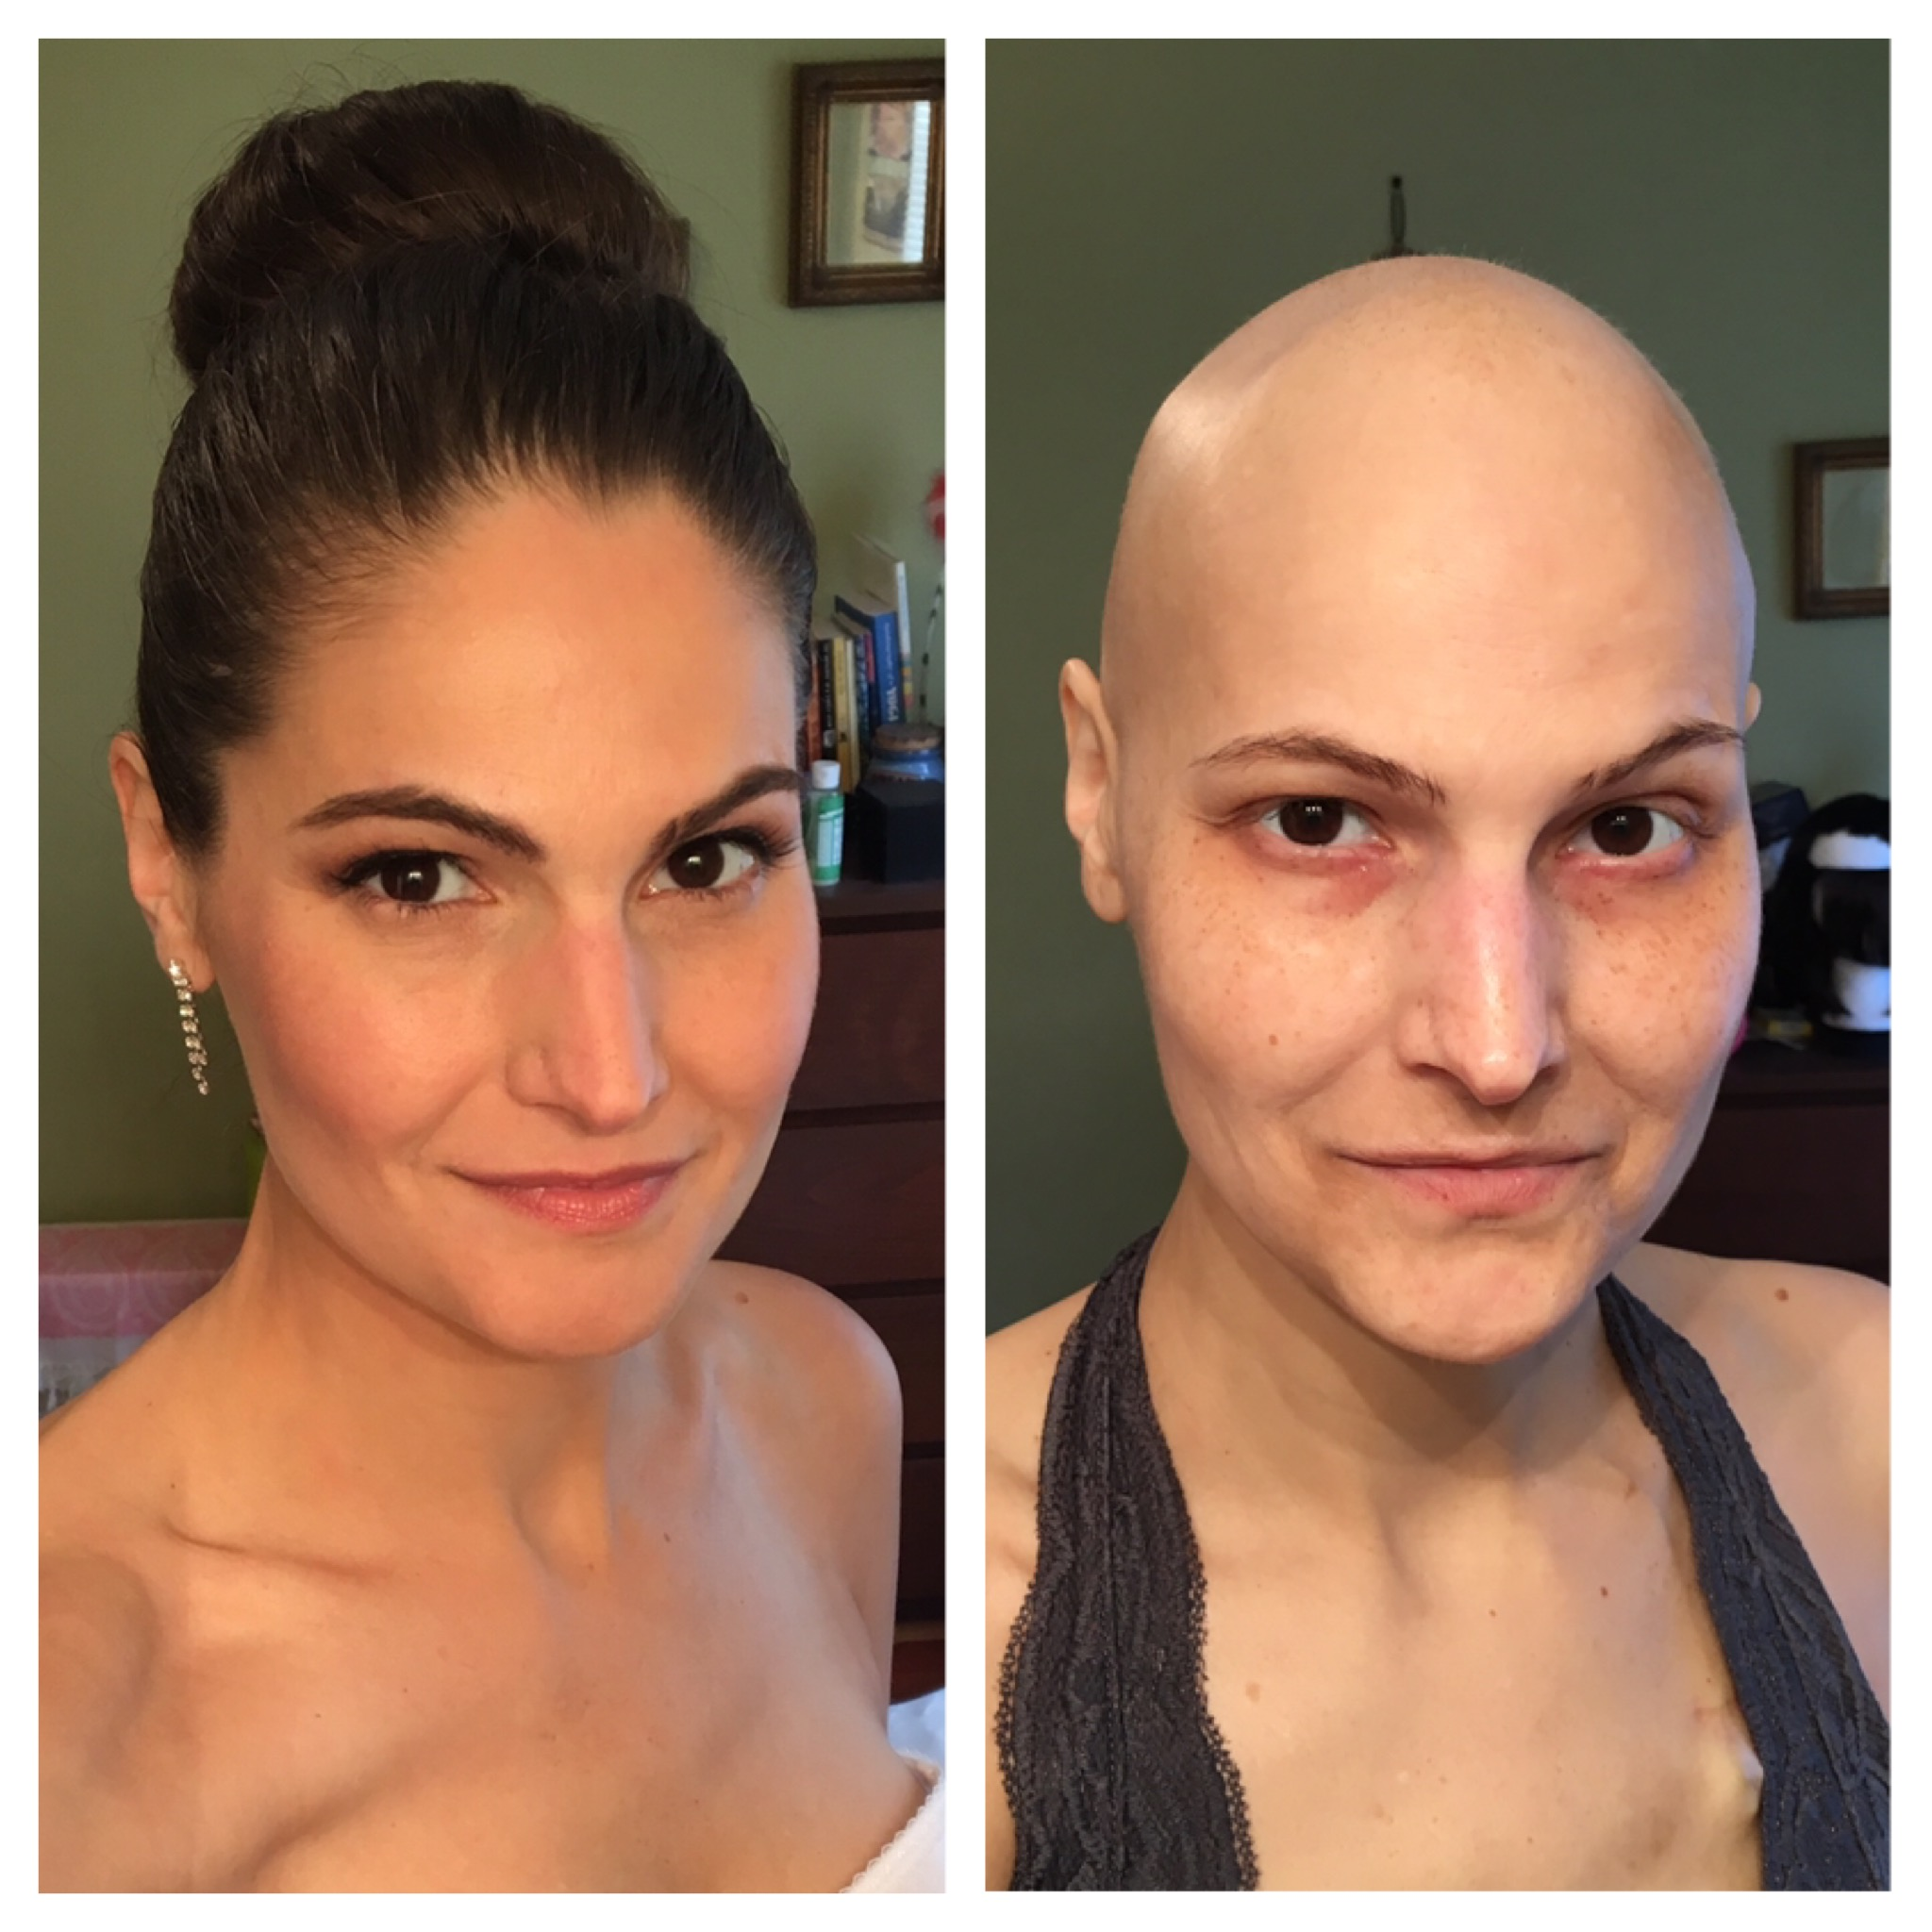 I thought I'd be cute and post a before and after chemo shot. The one on the right was taken 11/20/16, three days before I started. The one on the left was taken today, 4/8/17, 12 days after I finished. It's been a little over 4 months.